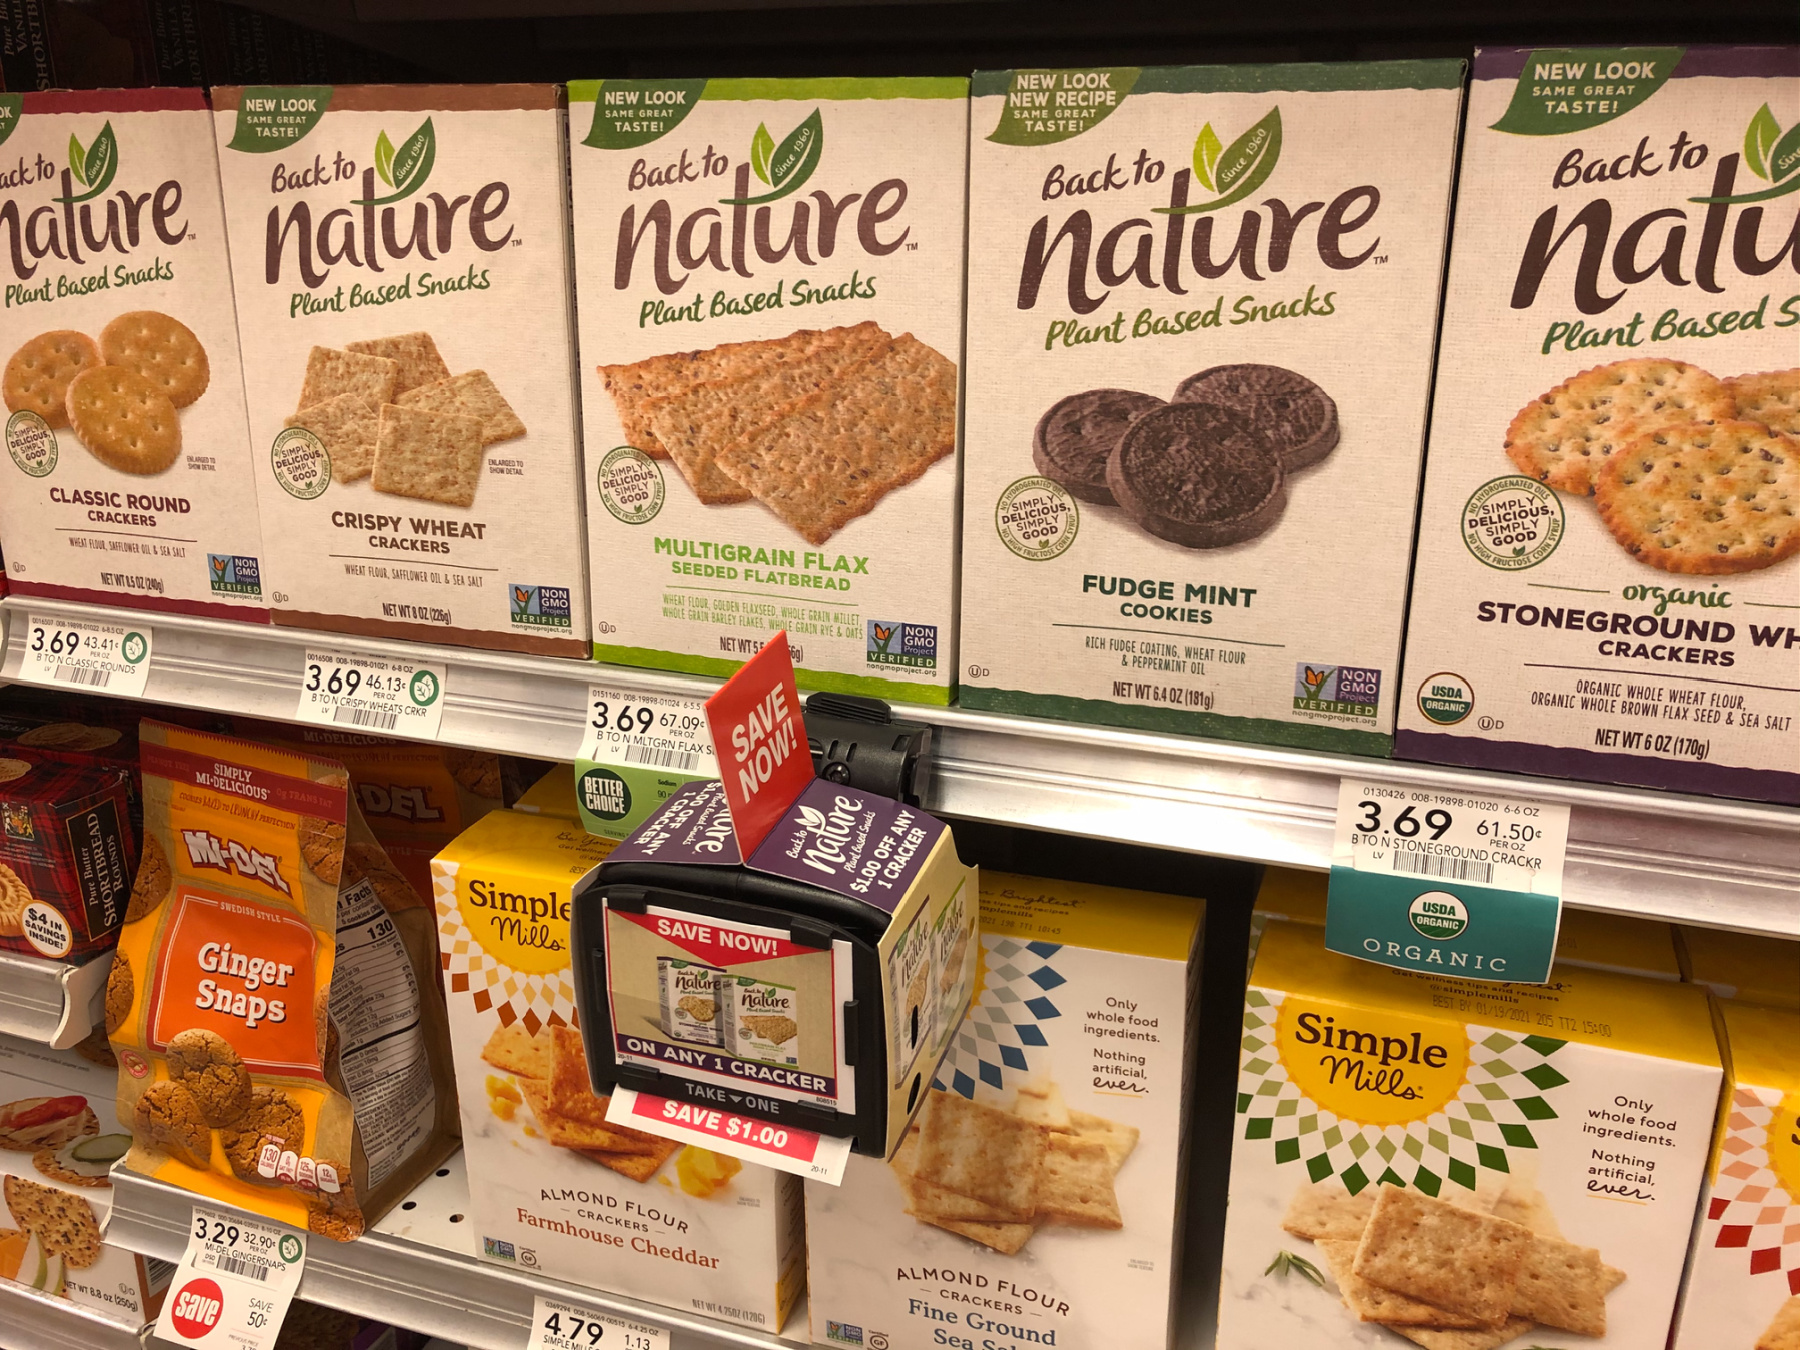 Try My Mint Chocolate Chip Cheesecake Squares & Get Savings On Back To Nature™ Snacks At Publix on I Heart Publix 1